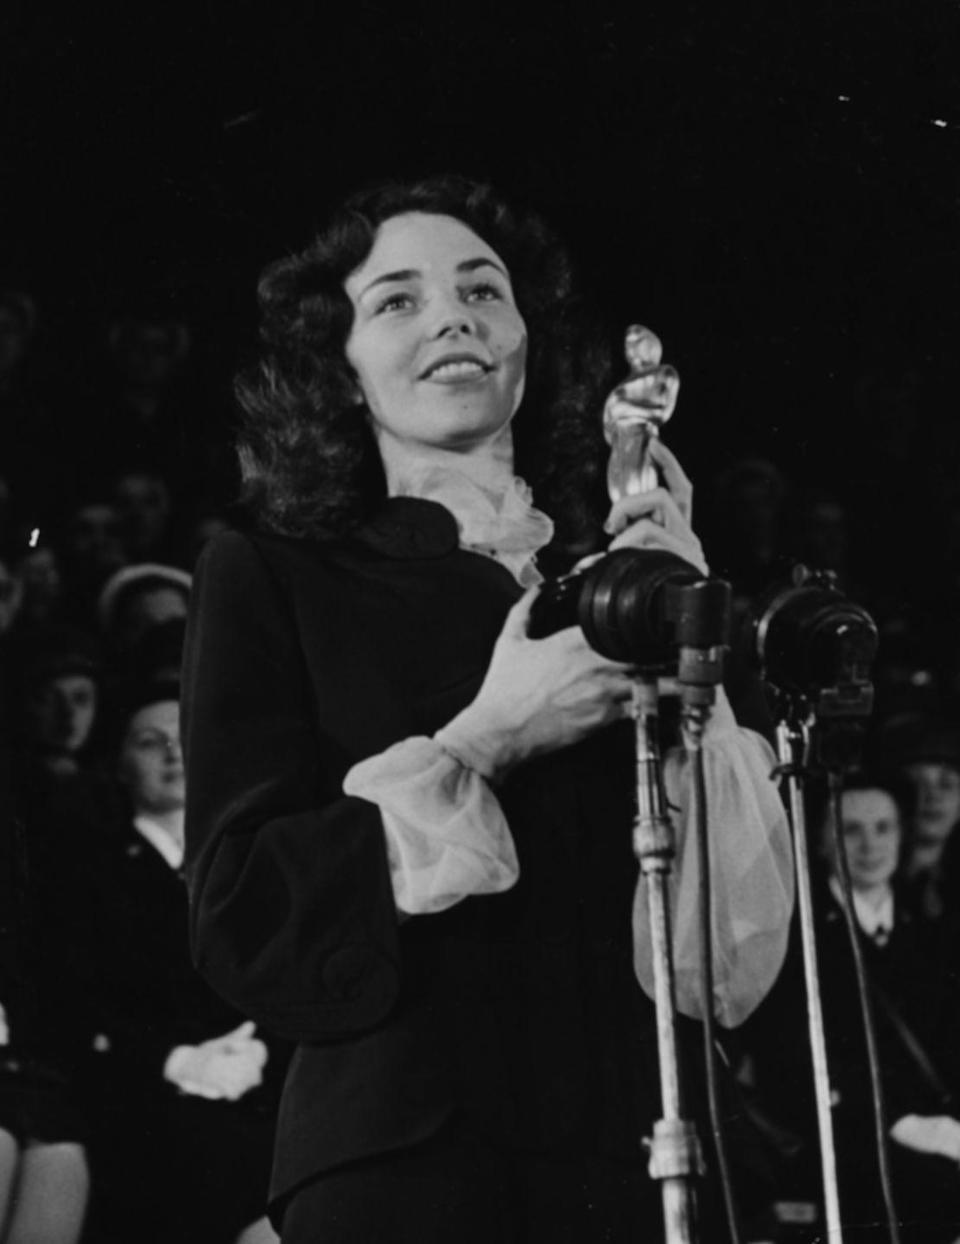 <p>The actress went for a simple yet elegant gown featuring a sheer neckline and sleeves while accepting her award for Best Actress in <em>The Song of Bernadette</em>. </p>